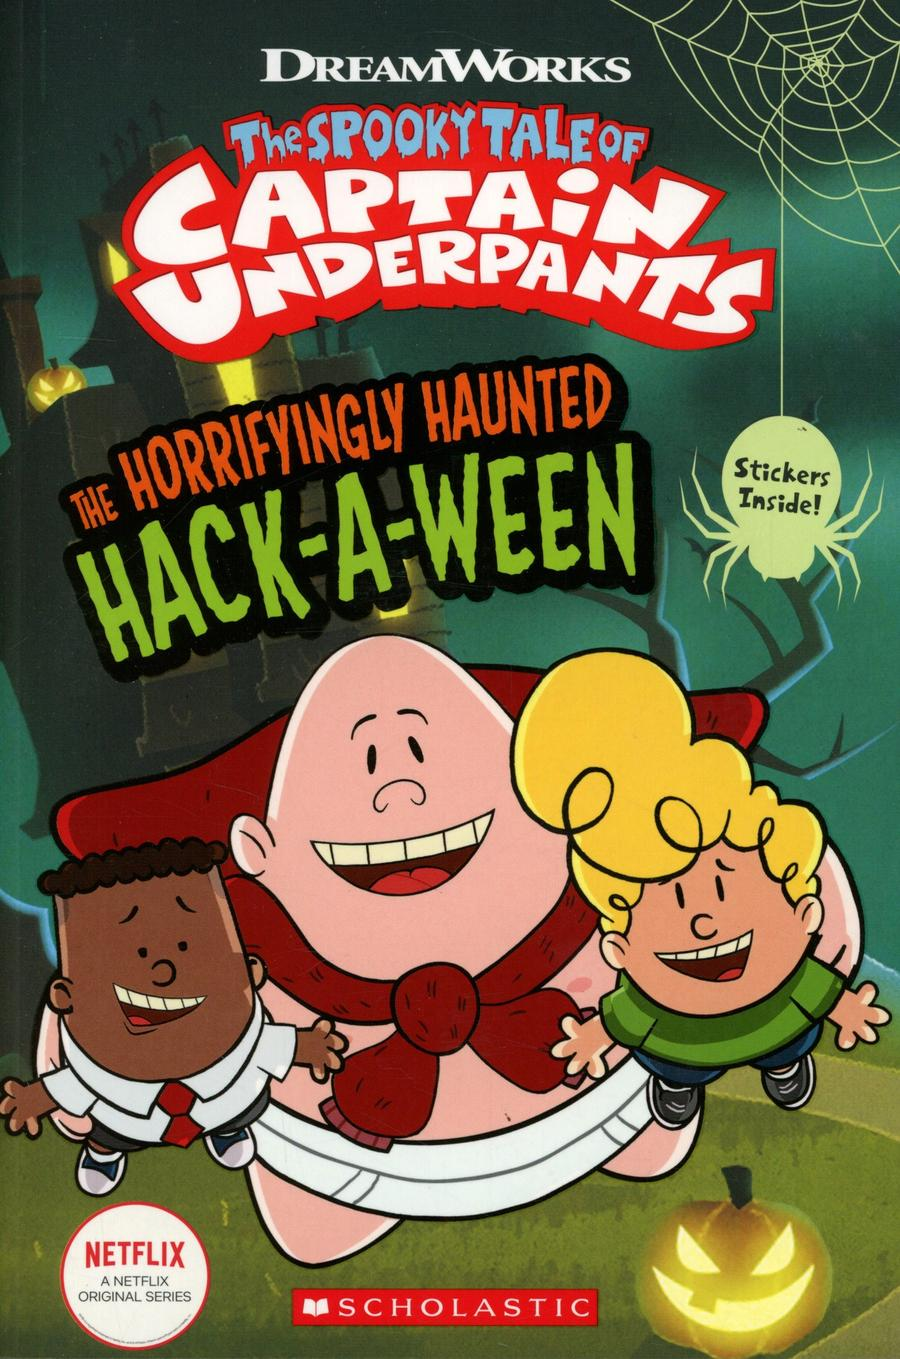 Captain Underpants The Horrifyingly Haunted Hack-A-Ween TP Comic Reader #1